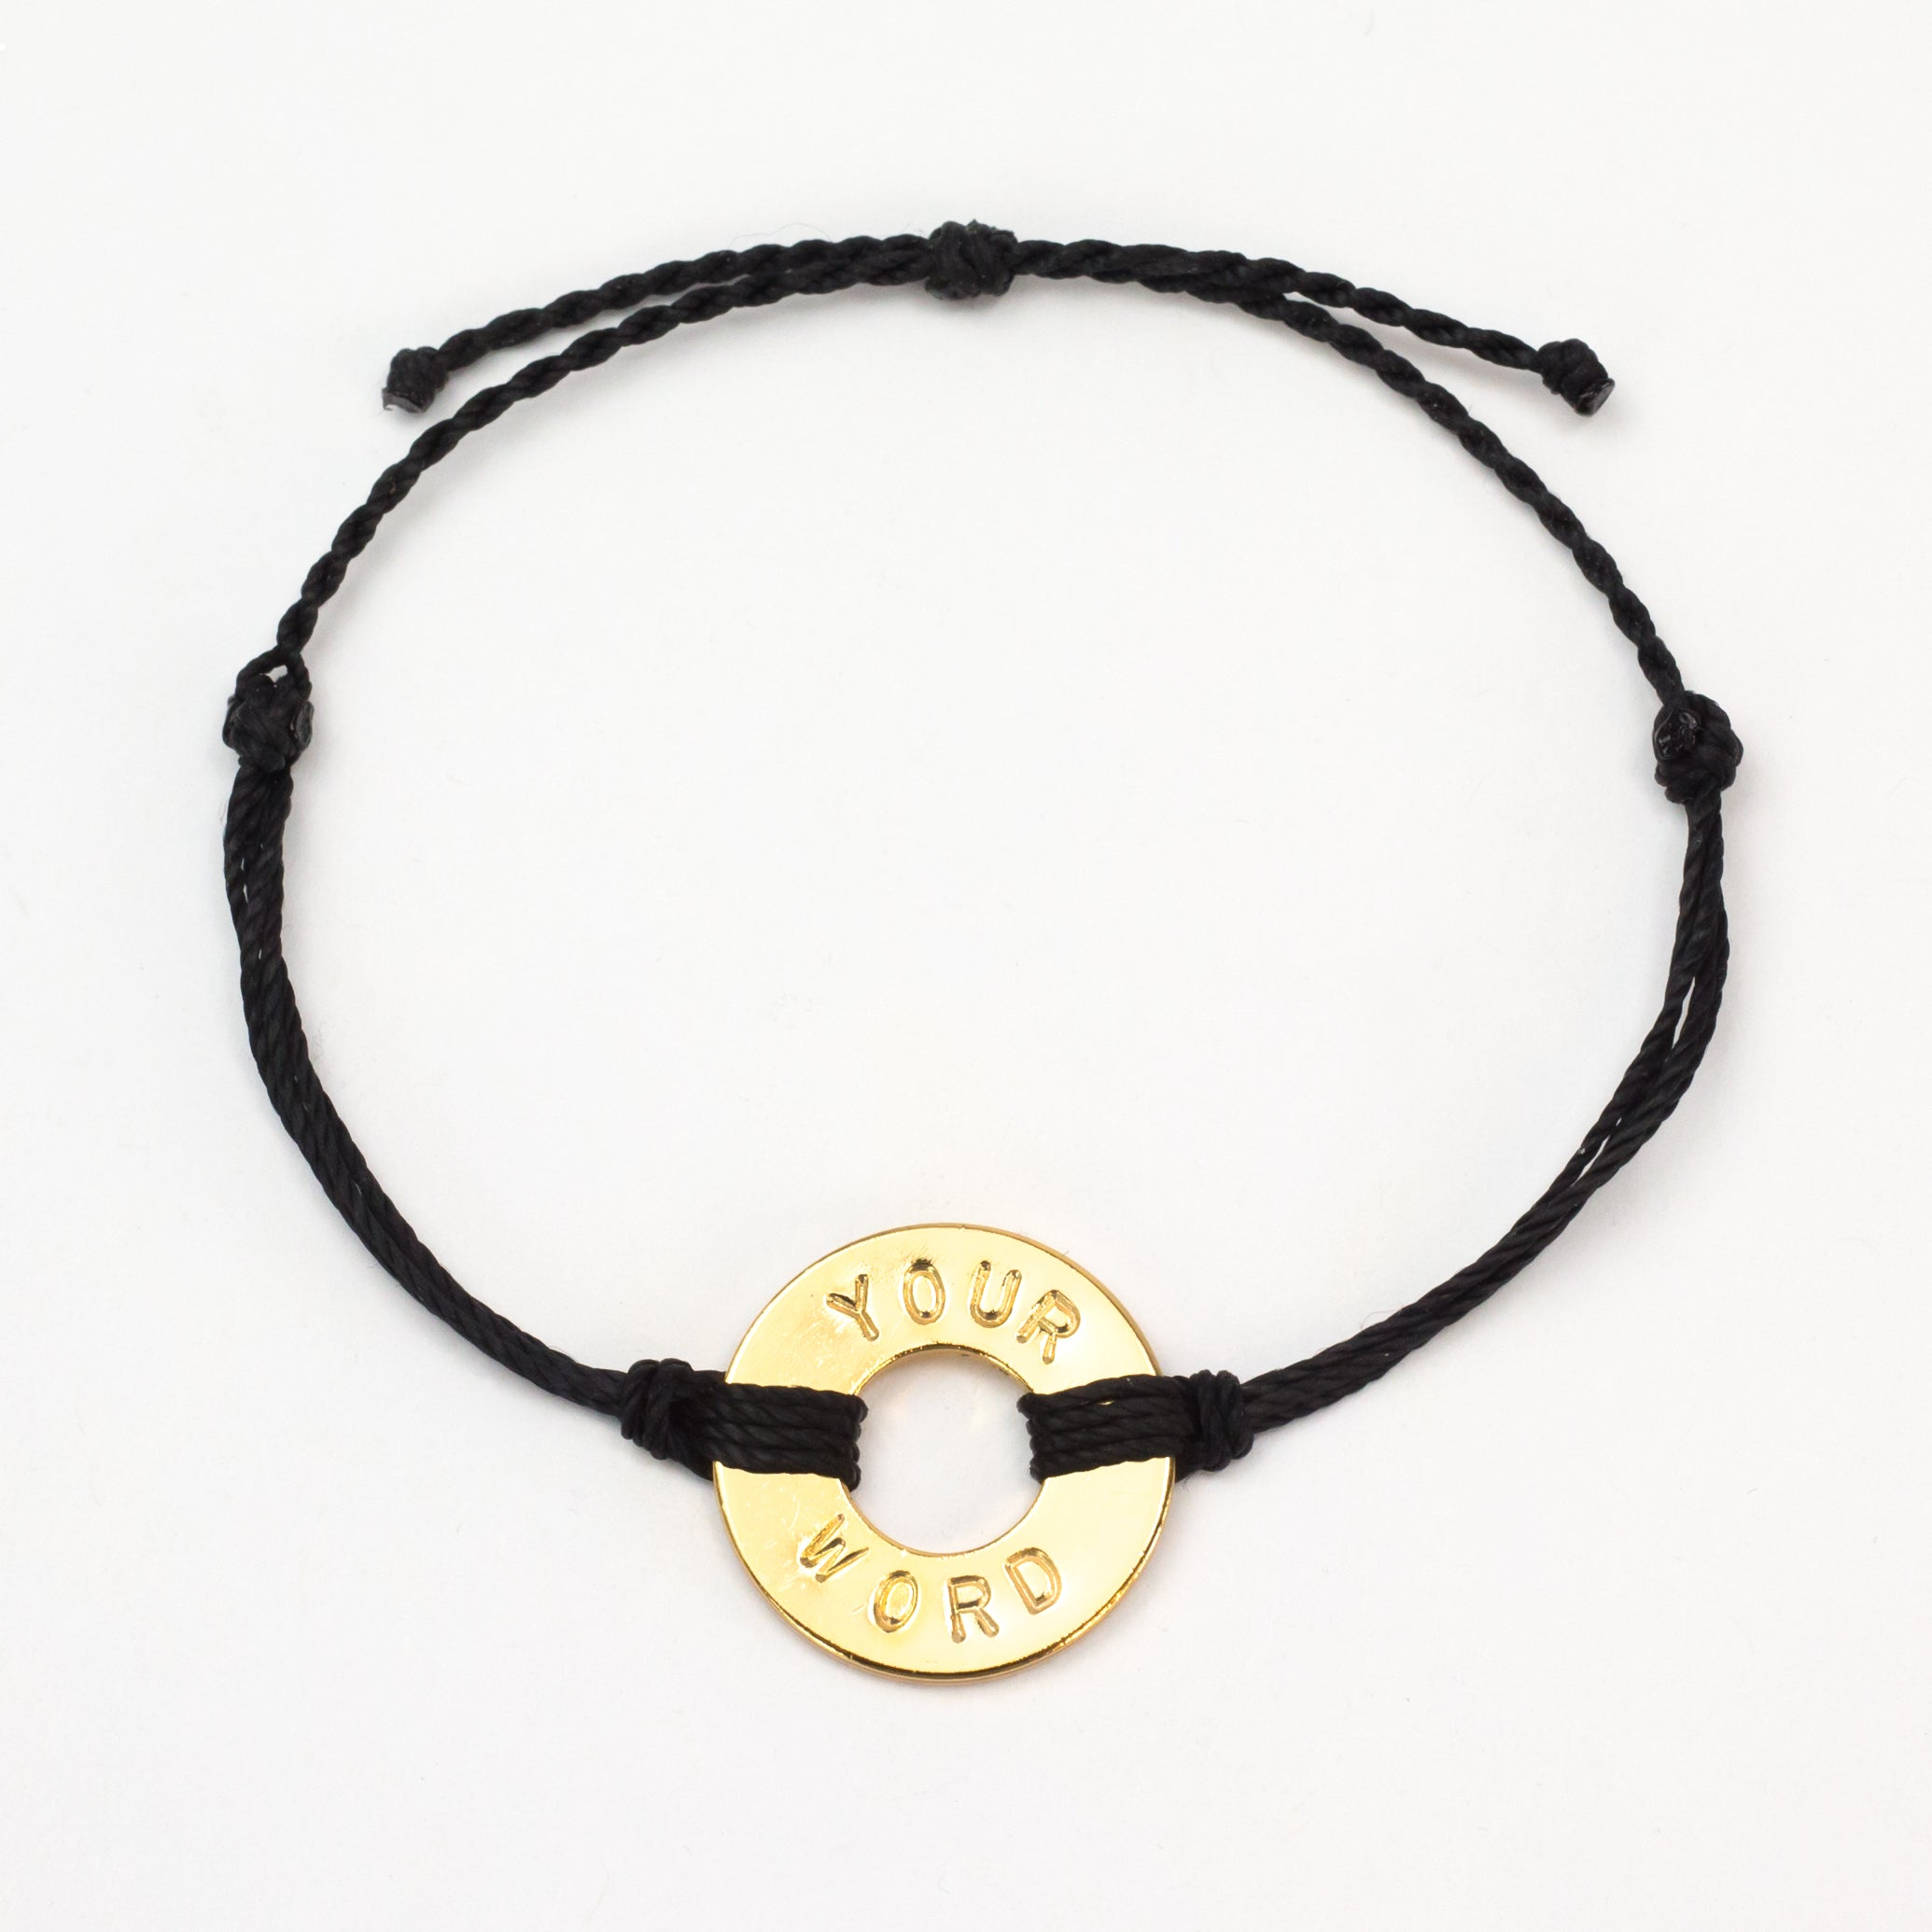 MyIntent Custom Twist Bracelet Black String with Gold Token